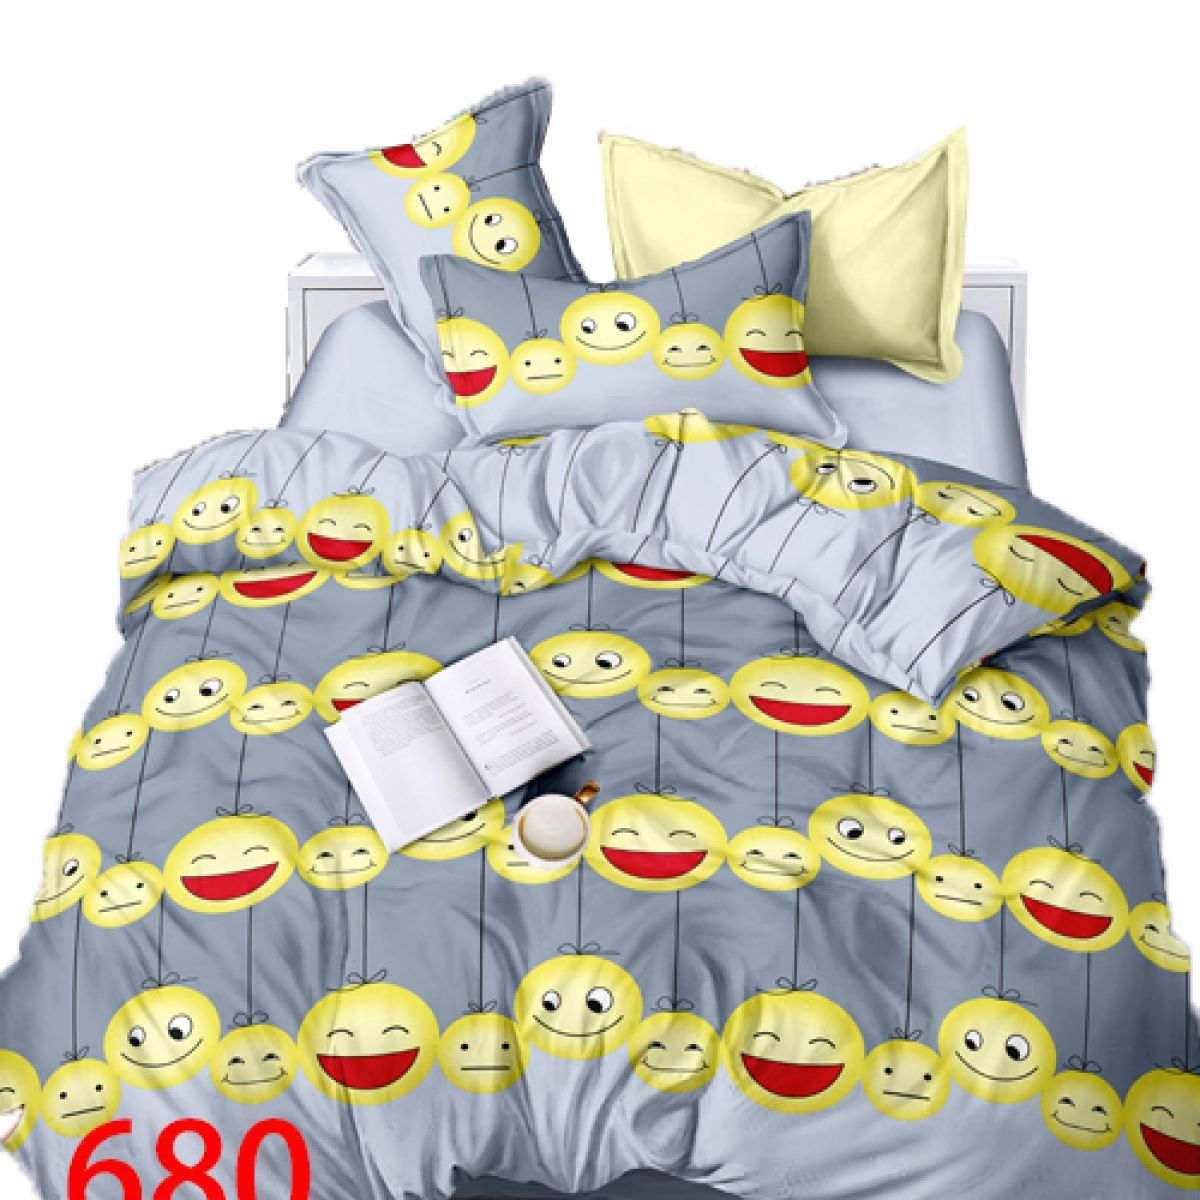 3D Bedding Set - AML-160(3) 4233-680